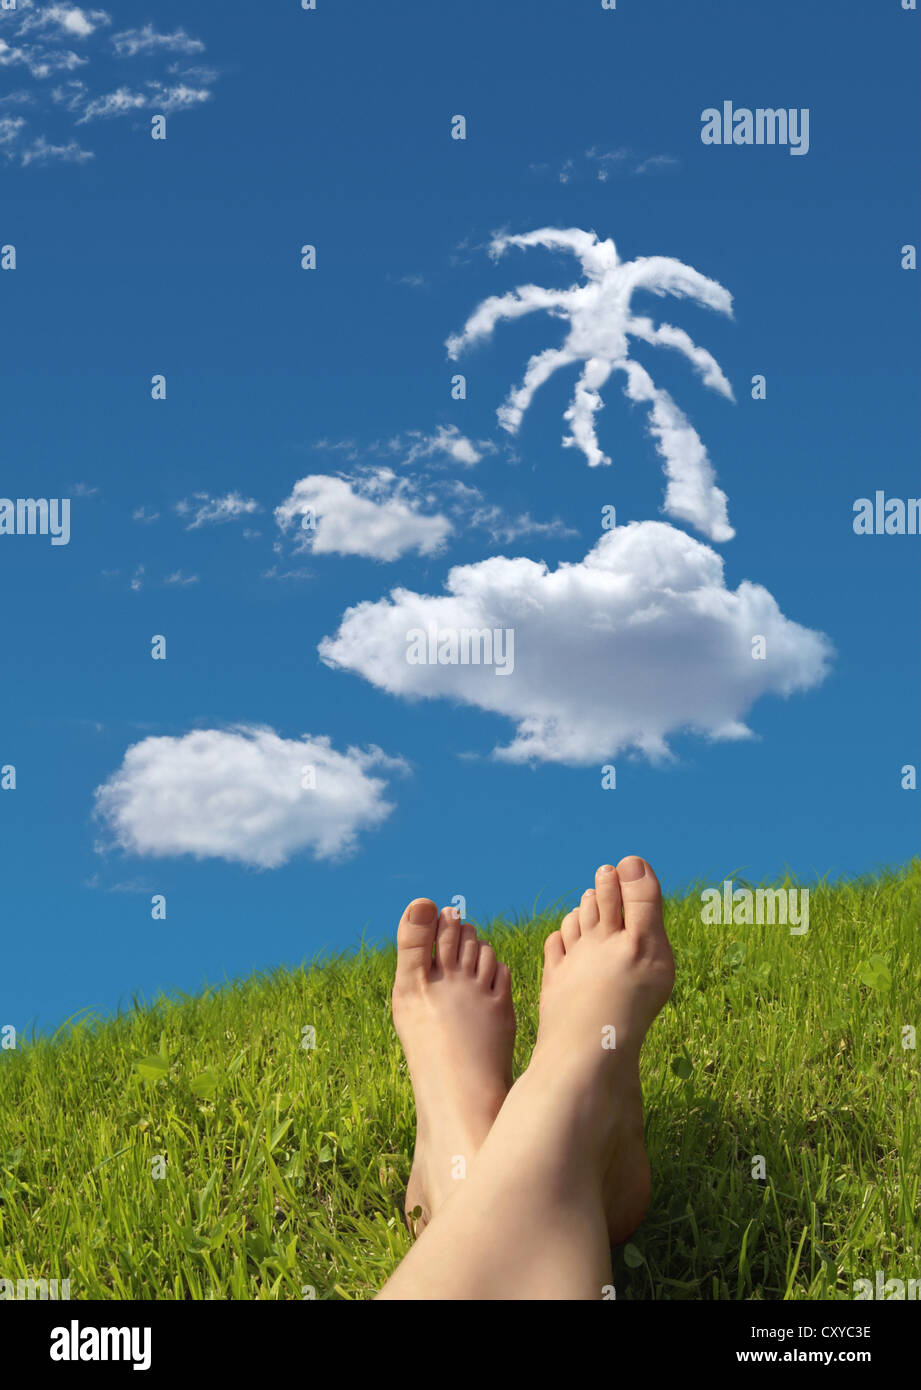 Woman lying on a meadow, detail of feet with a cloud formation shaped like a tropical island in the sky - Stock Image